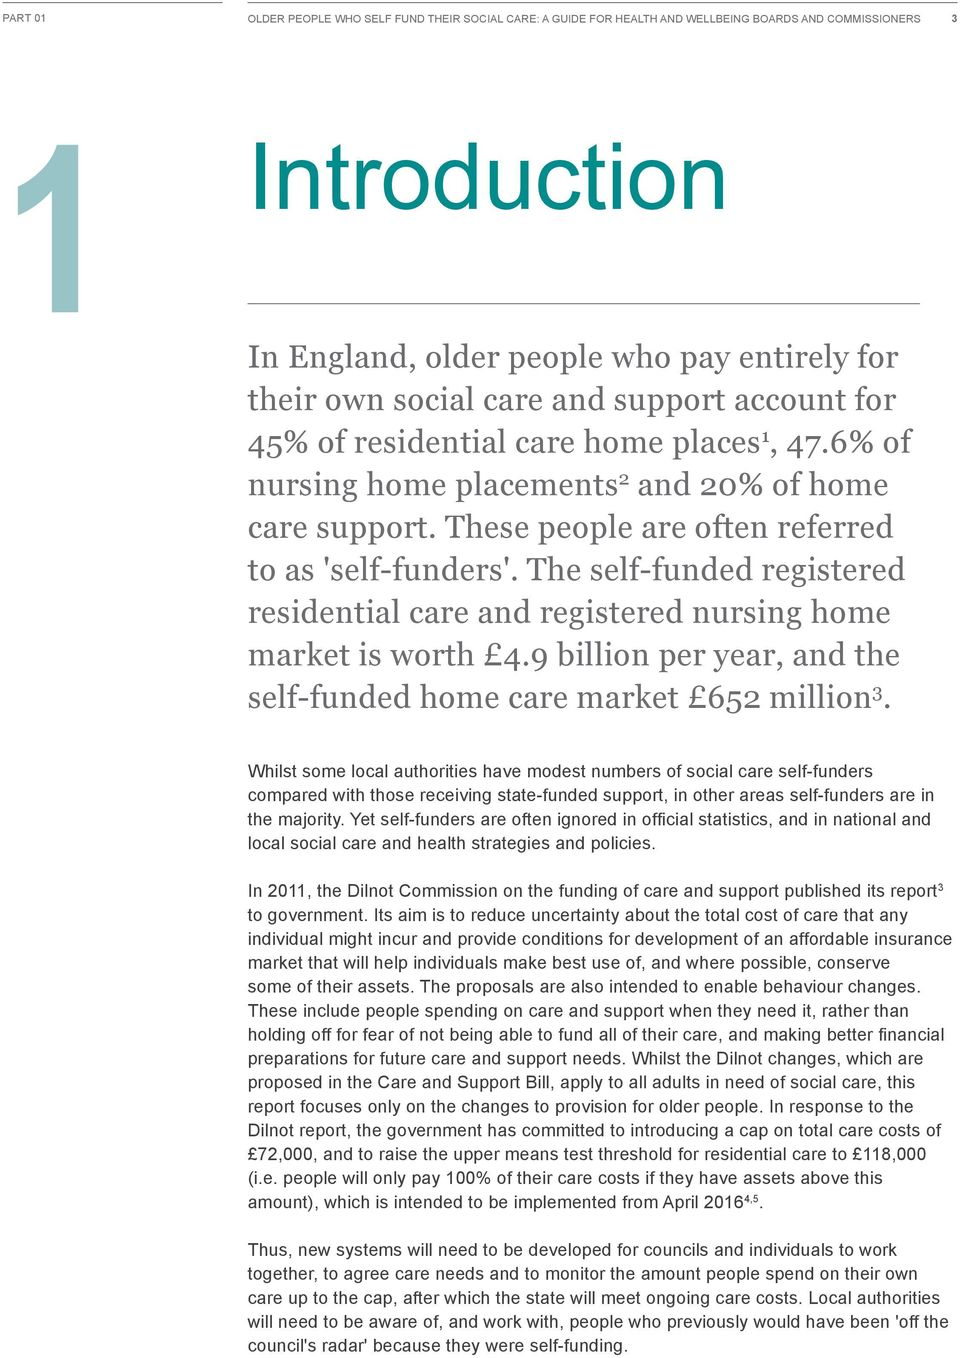 The self-funded registered residential care and registered nursing home market is worth 4.9 billion per year, and the self-funded home care market 652 million 3.